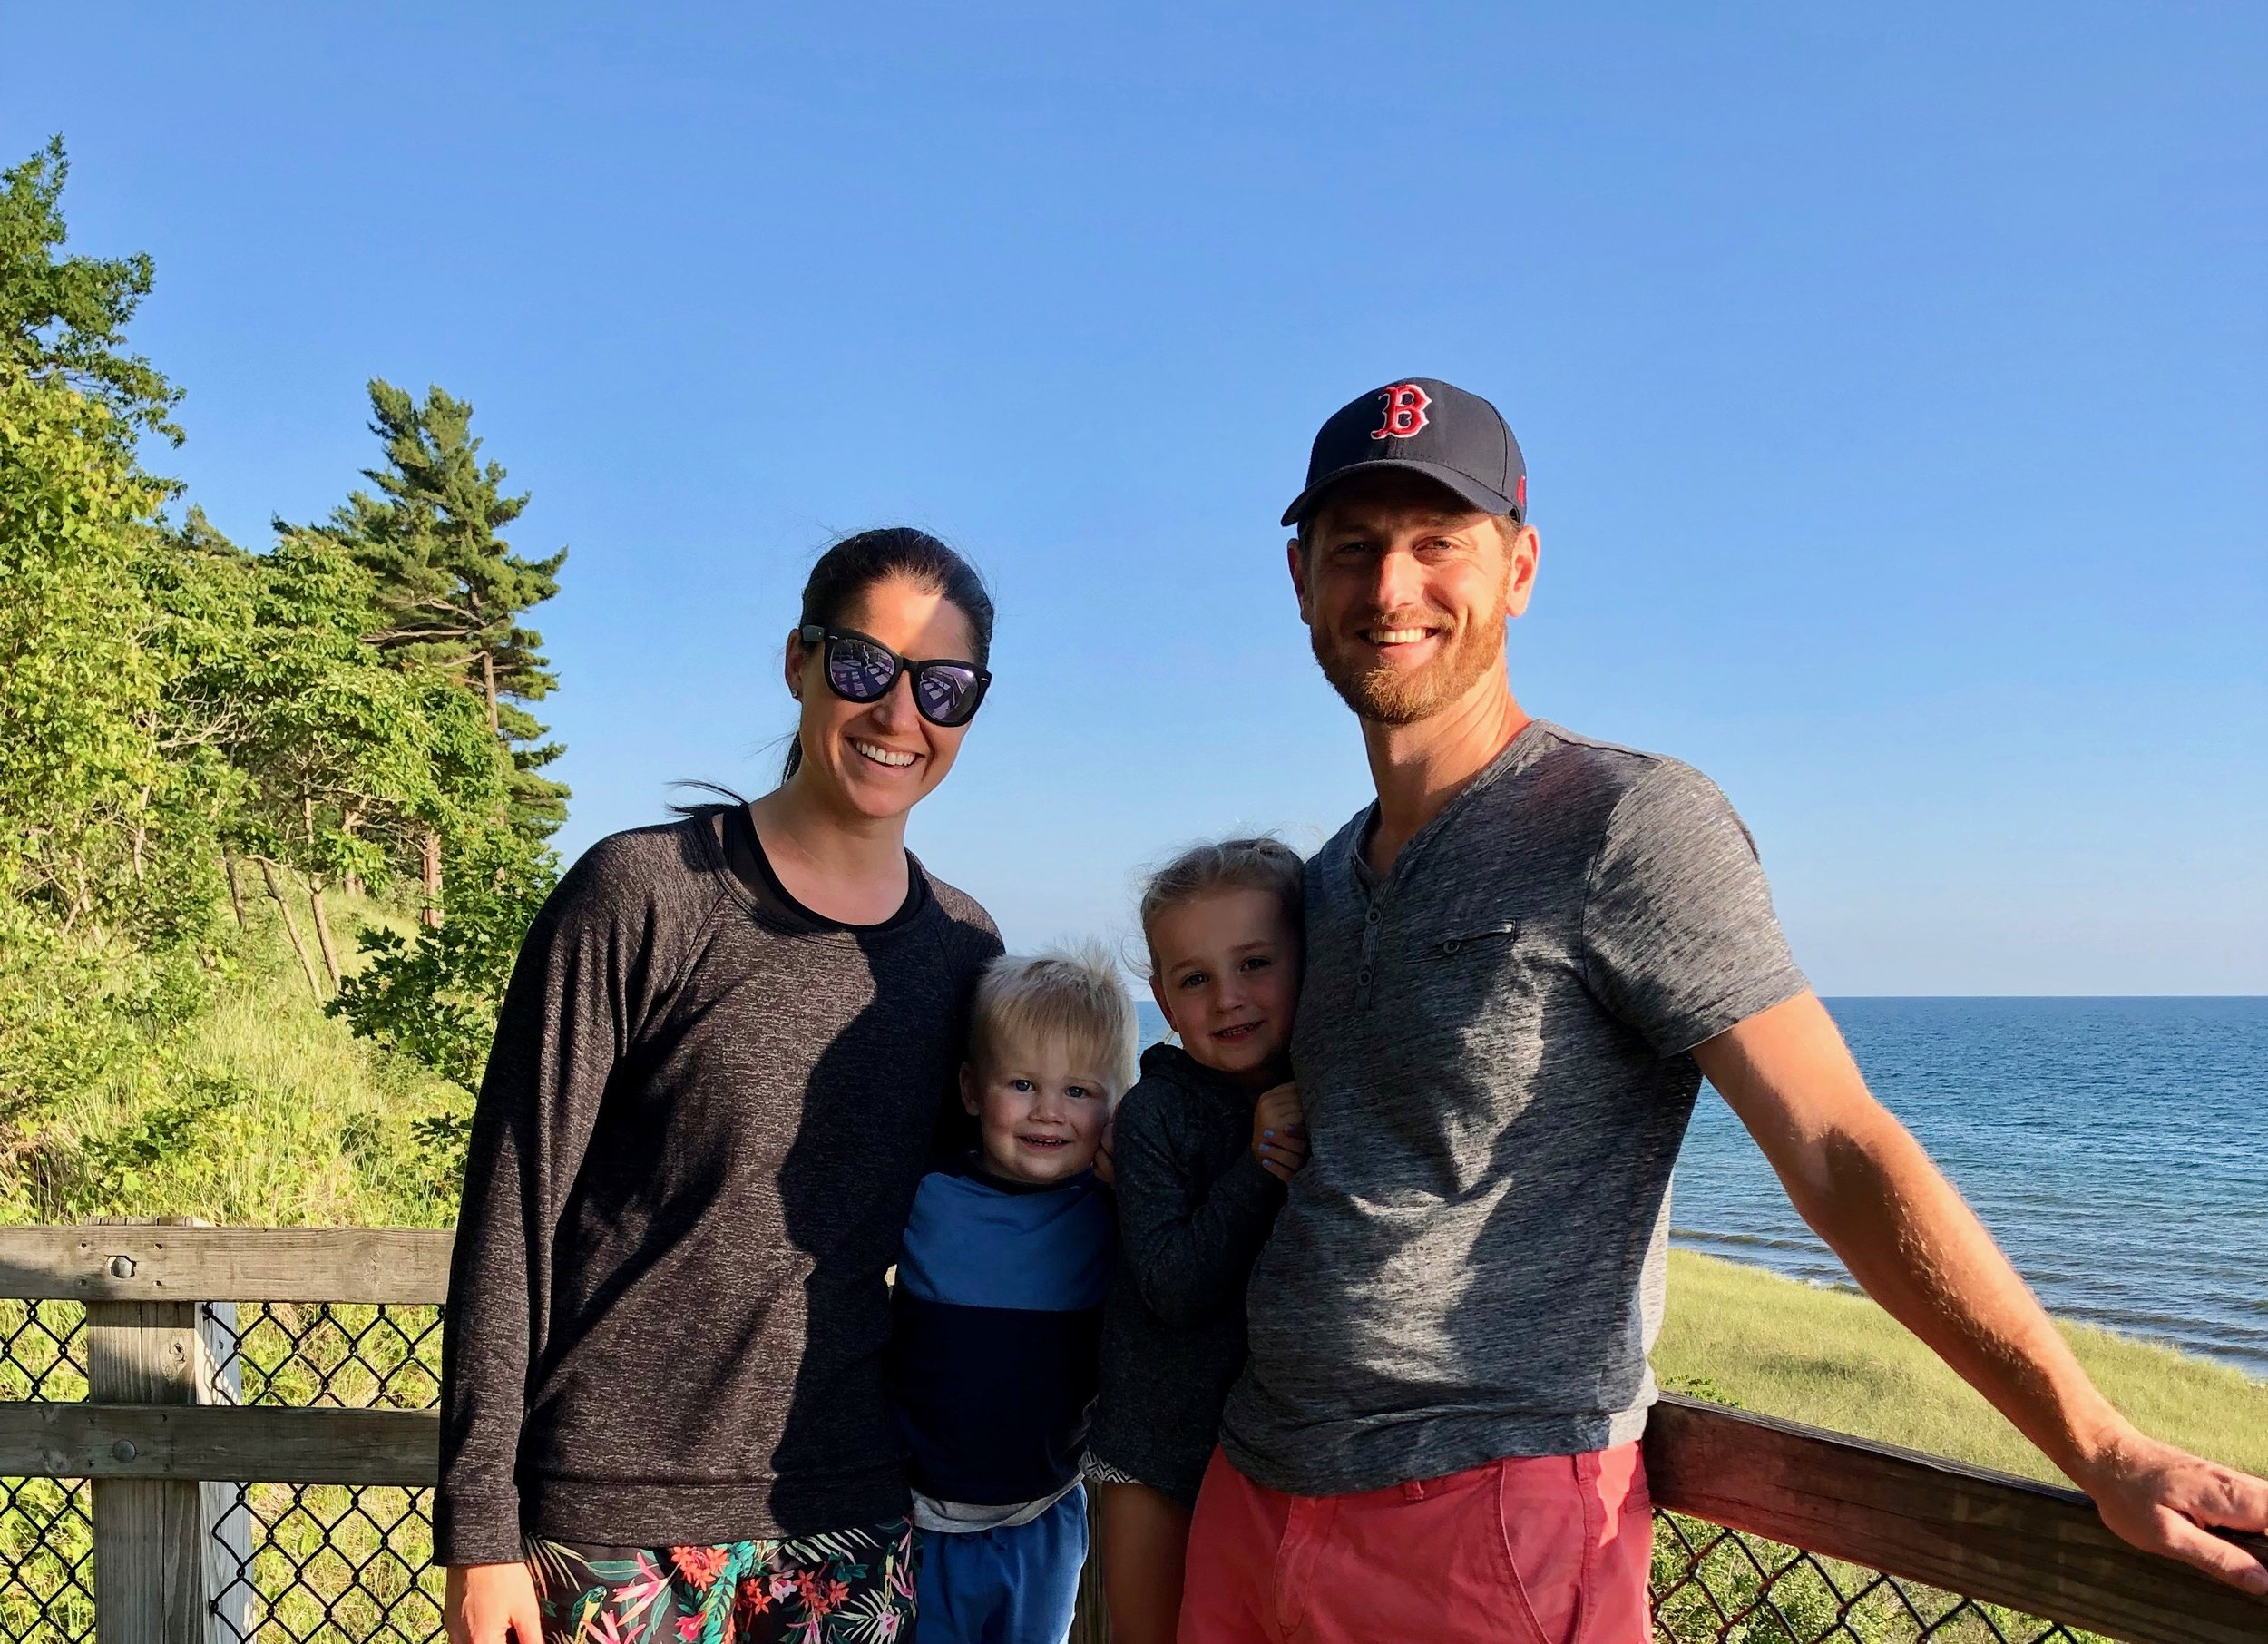 lake michigan blogger family.jpeg